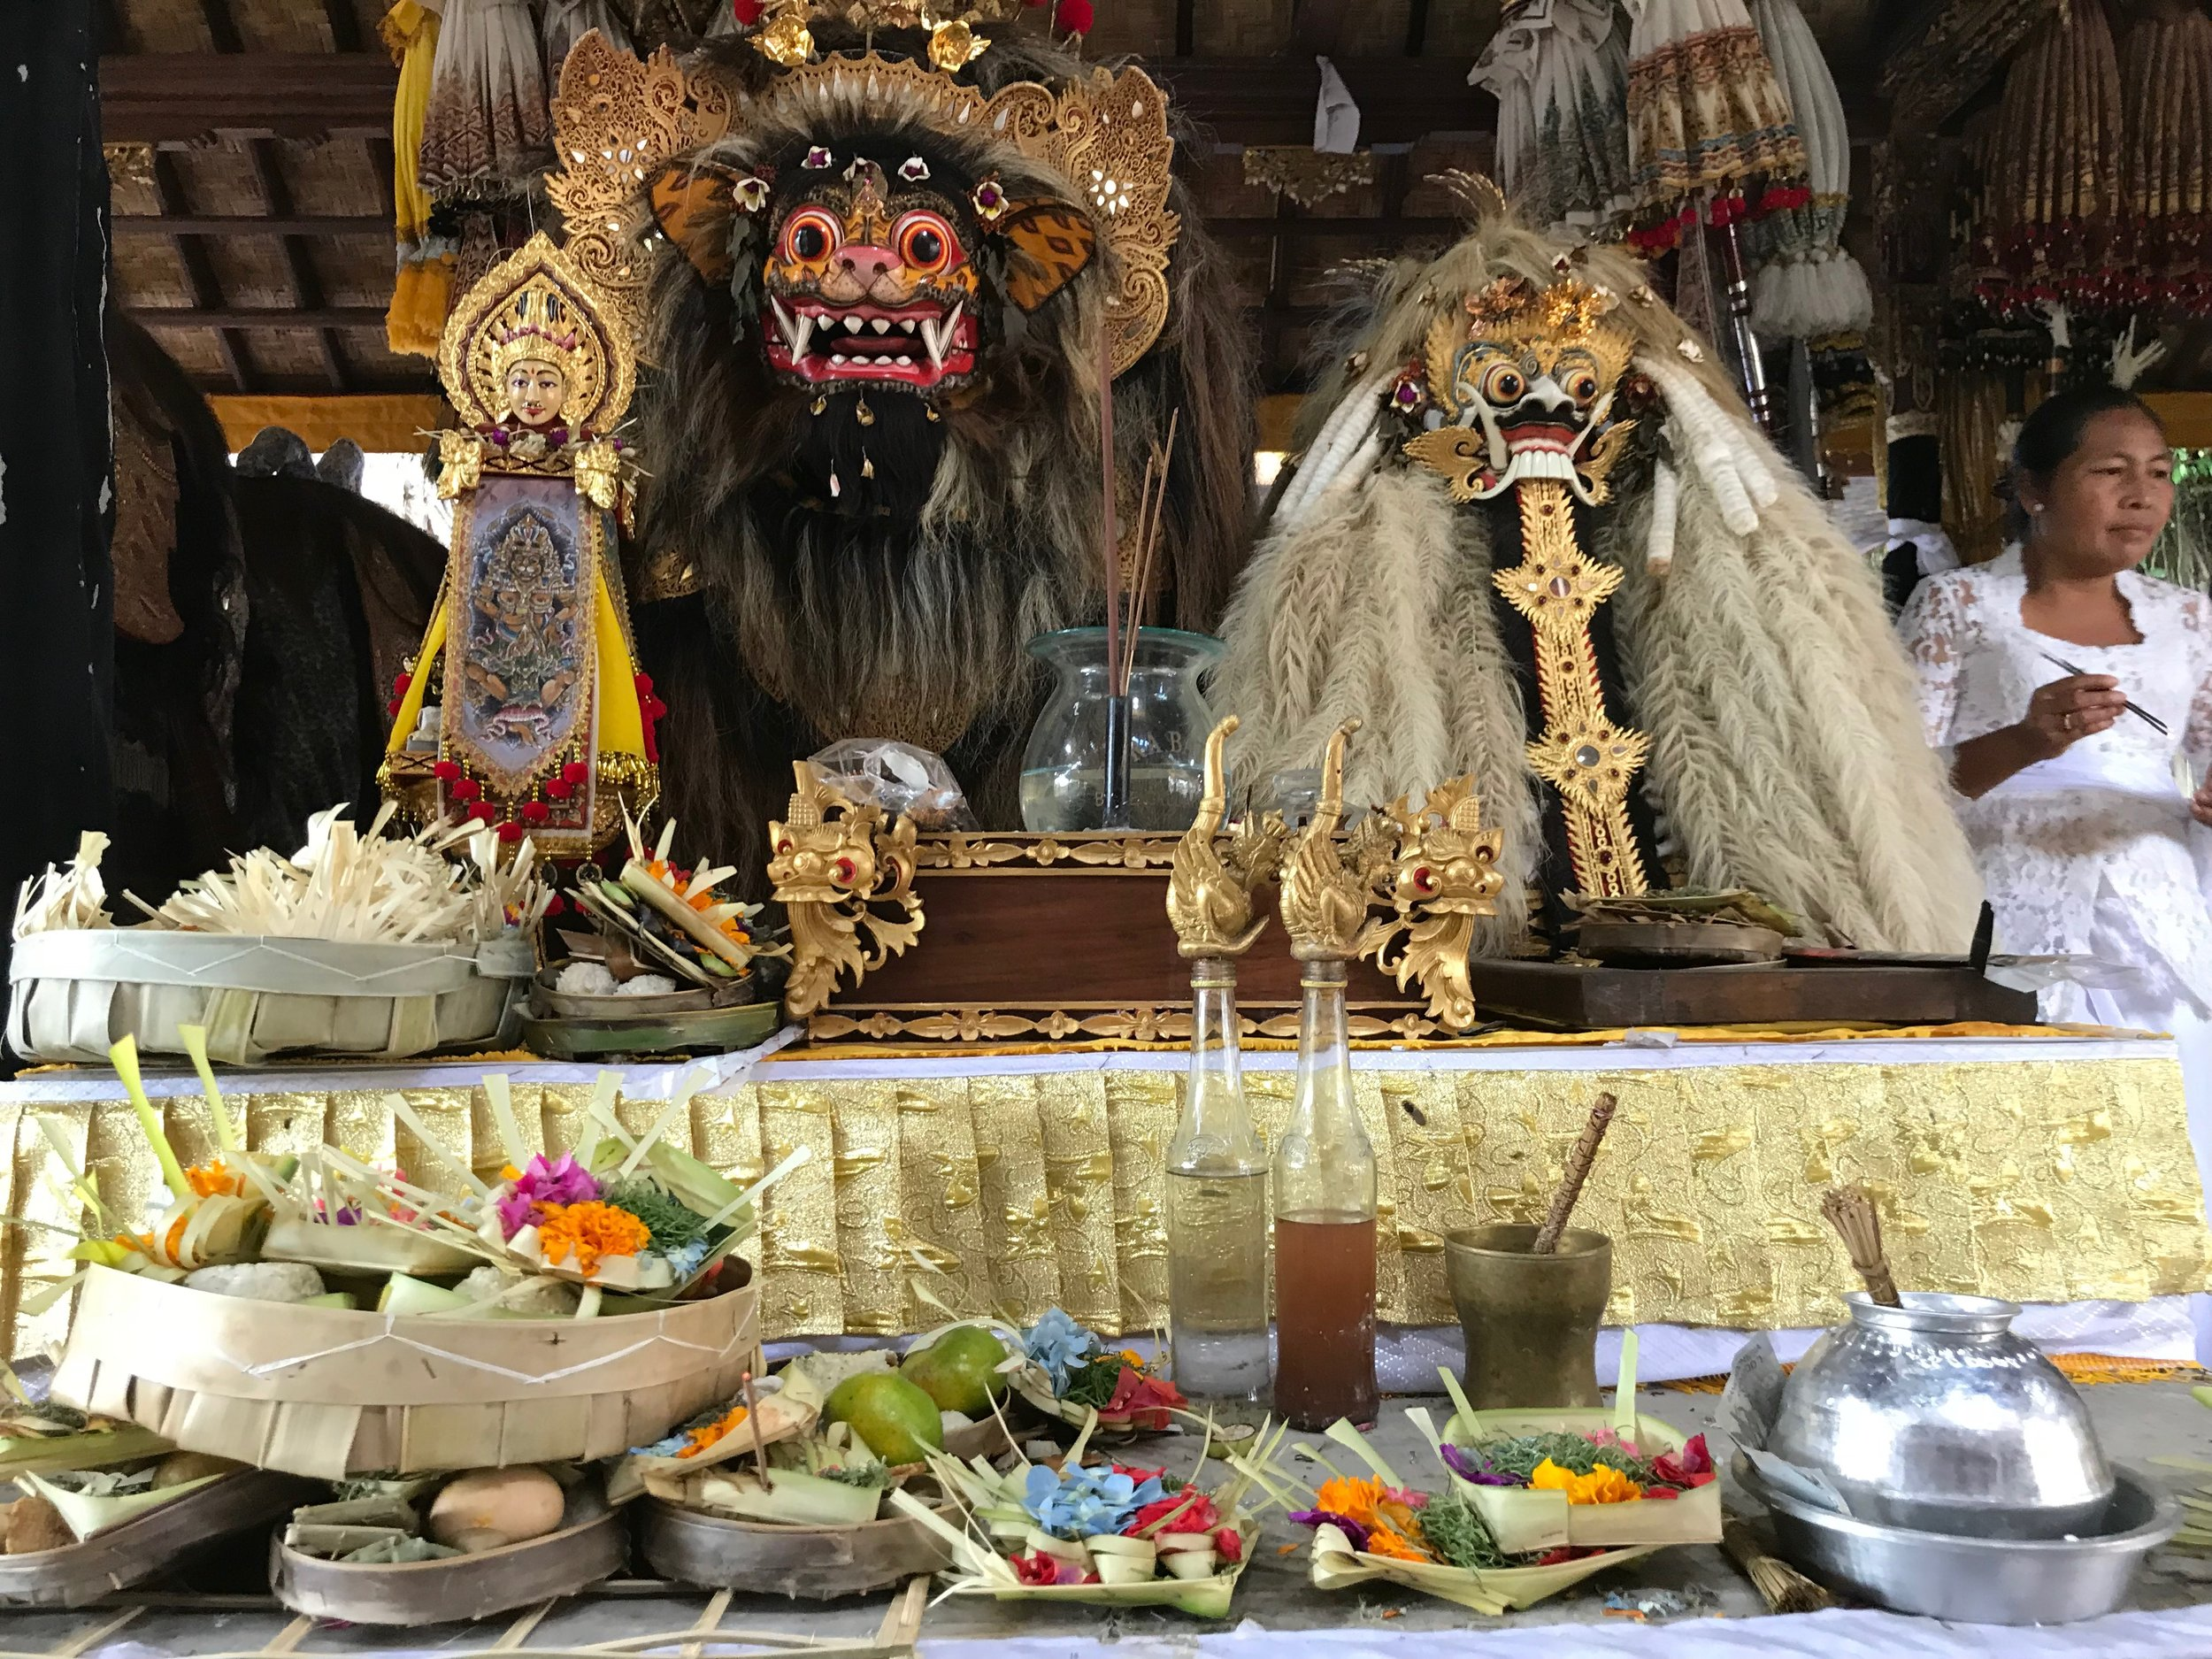 Barong, on the left, is the representation of good on Bali and, as such, is the yin to Rangda's yang